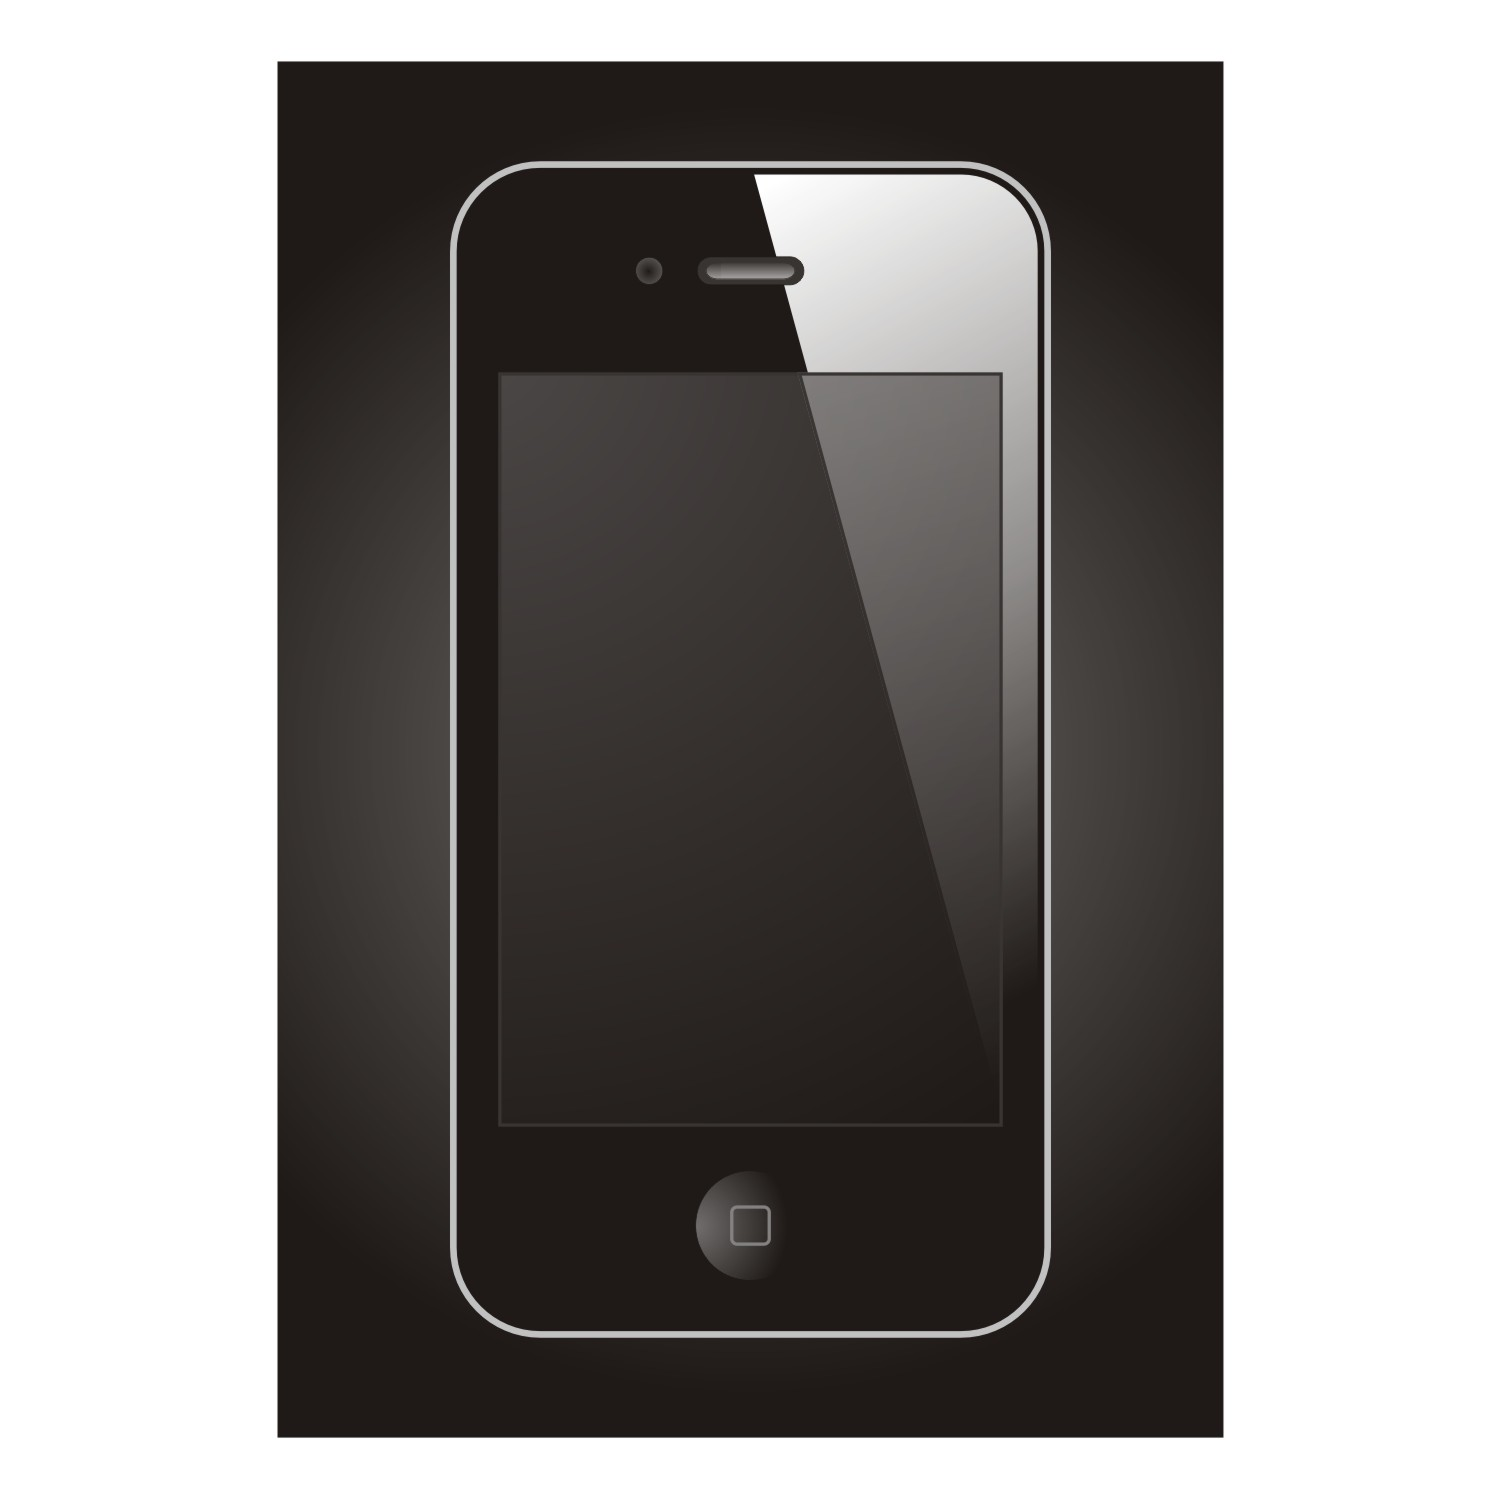 The luxury mobile device on black background